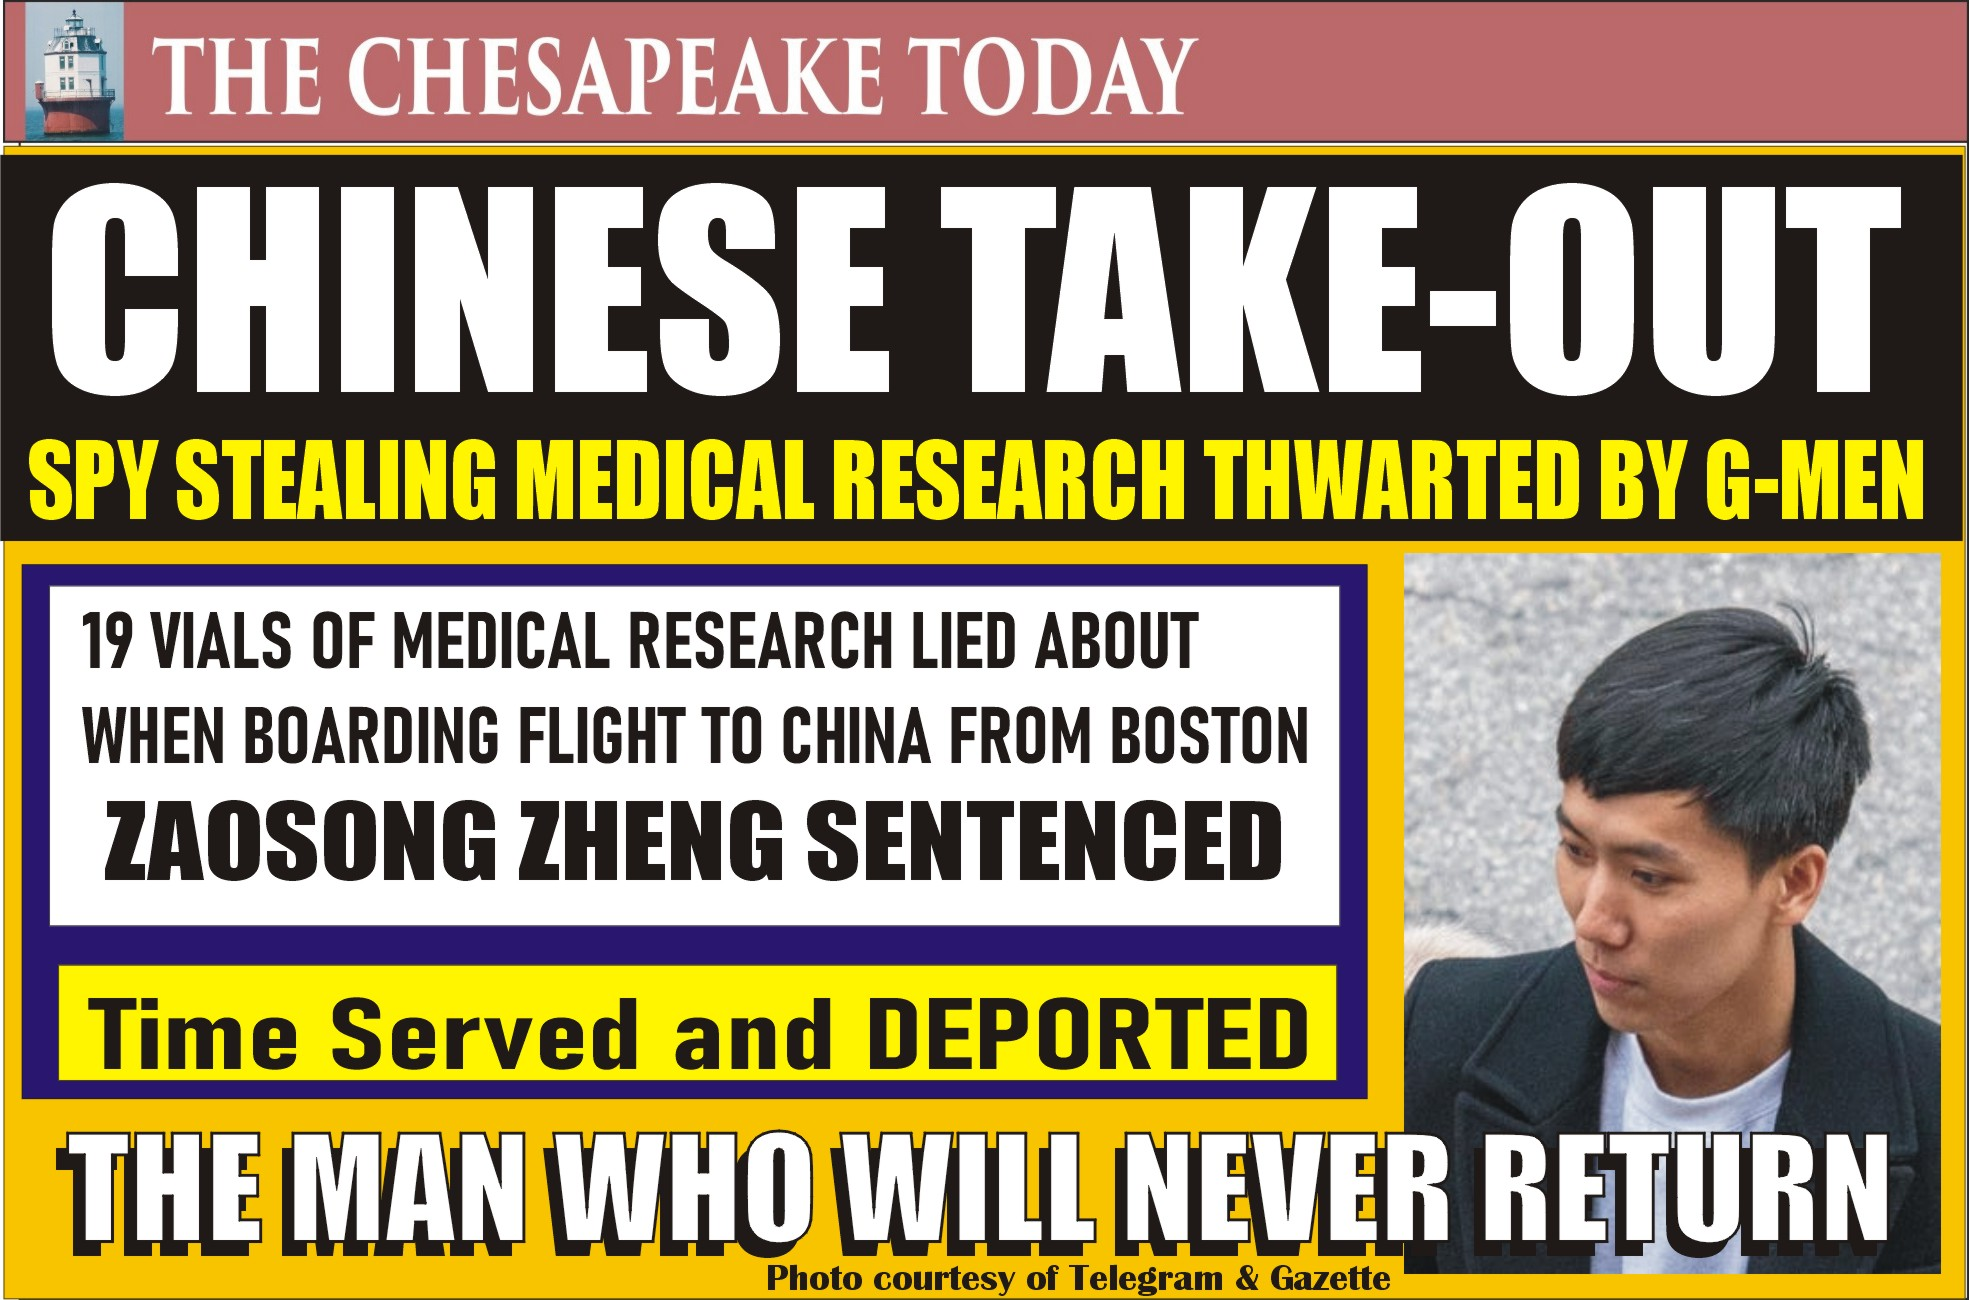 CHINESE TAKEOUT THWARTED BY G-MEN: Chinese Researcher Sentenced for Making False Statements to Federal Agents